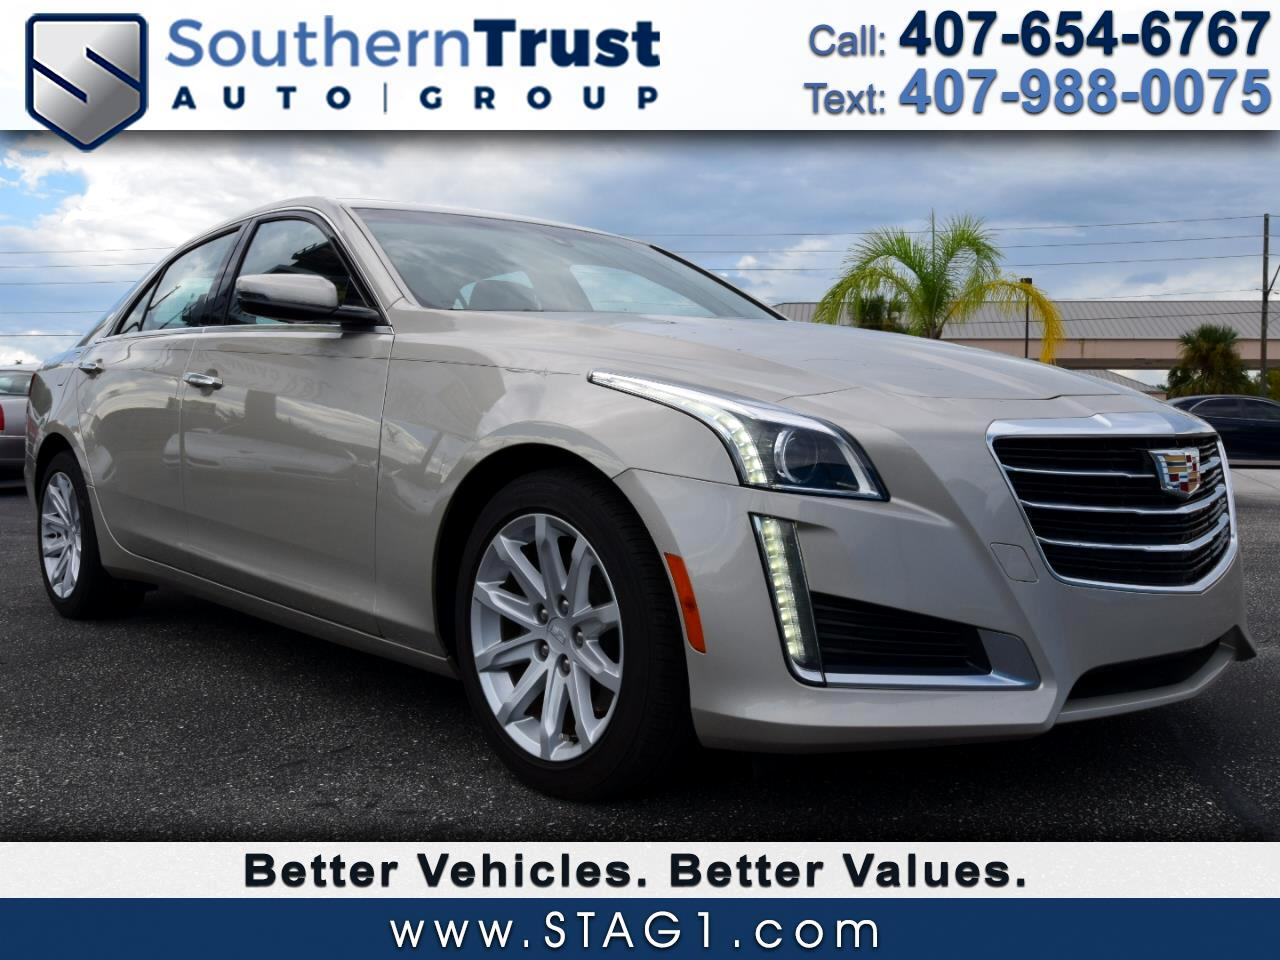 2016 Cadillac CTS Sedan 4dr Sdn 2.0L Turbo RWD